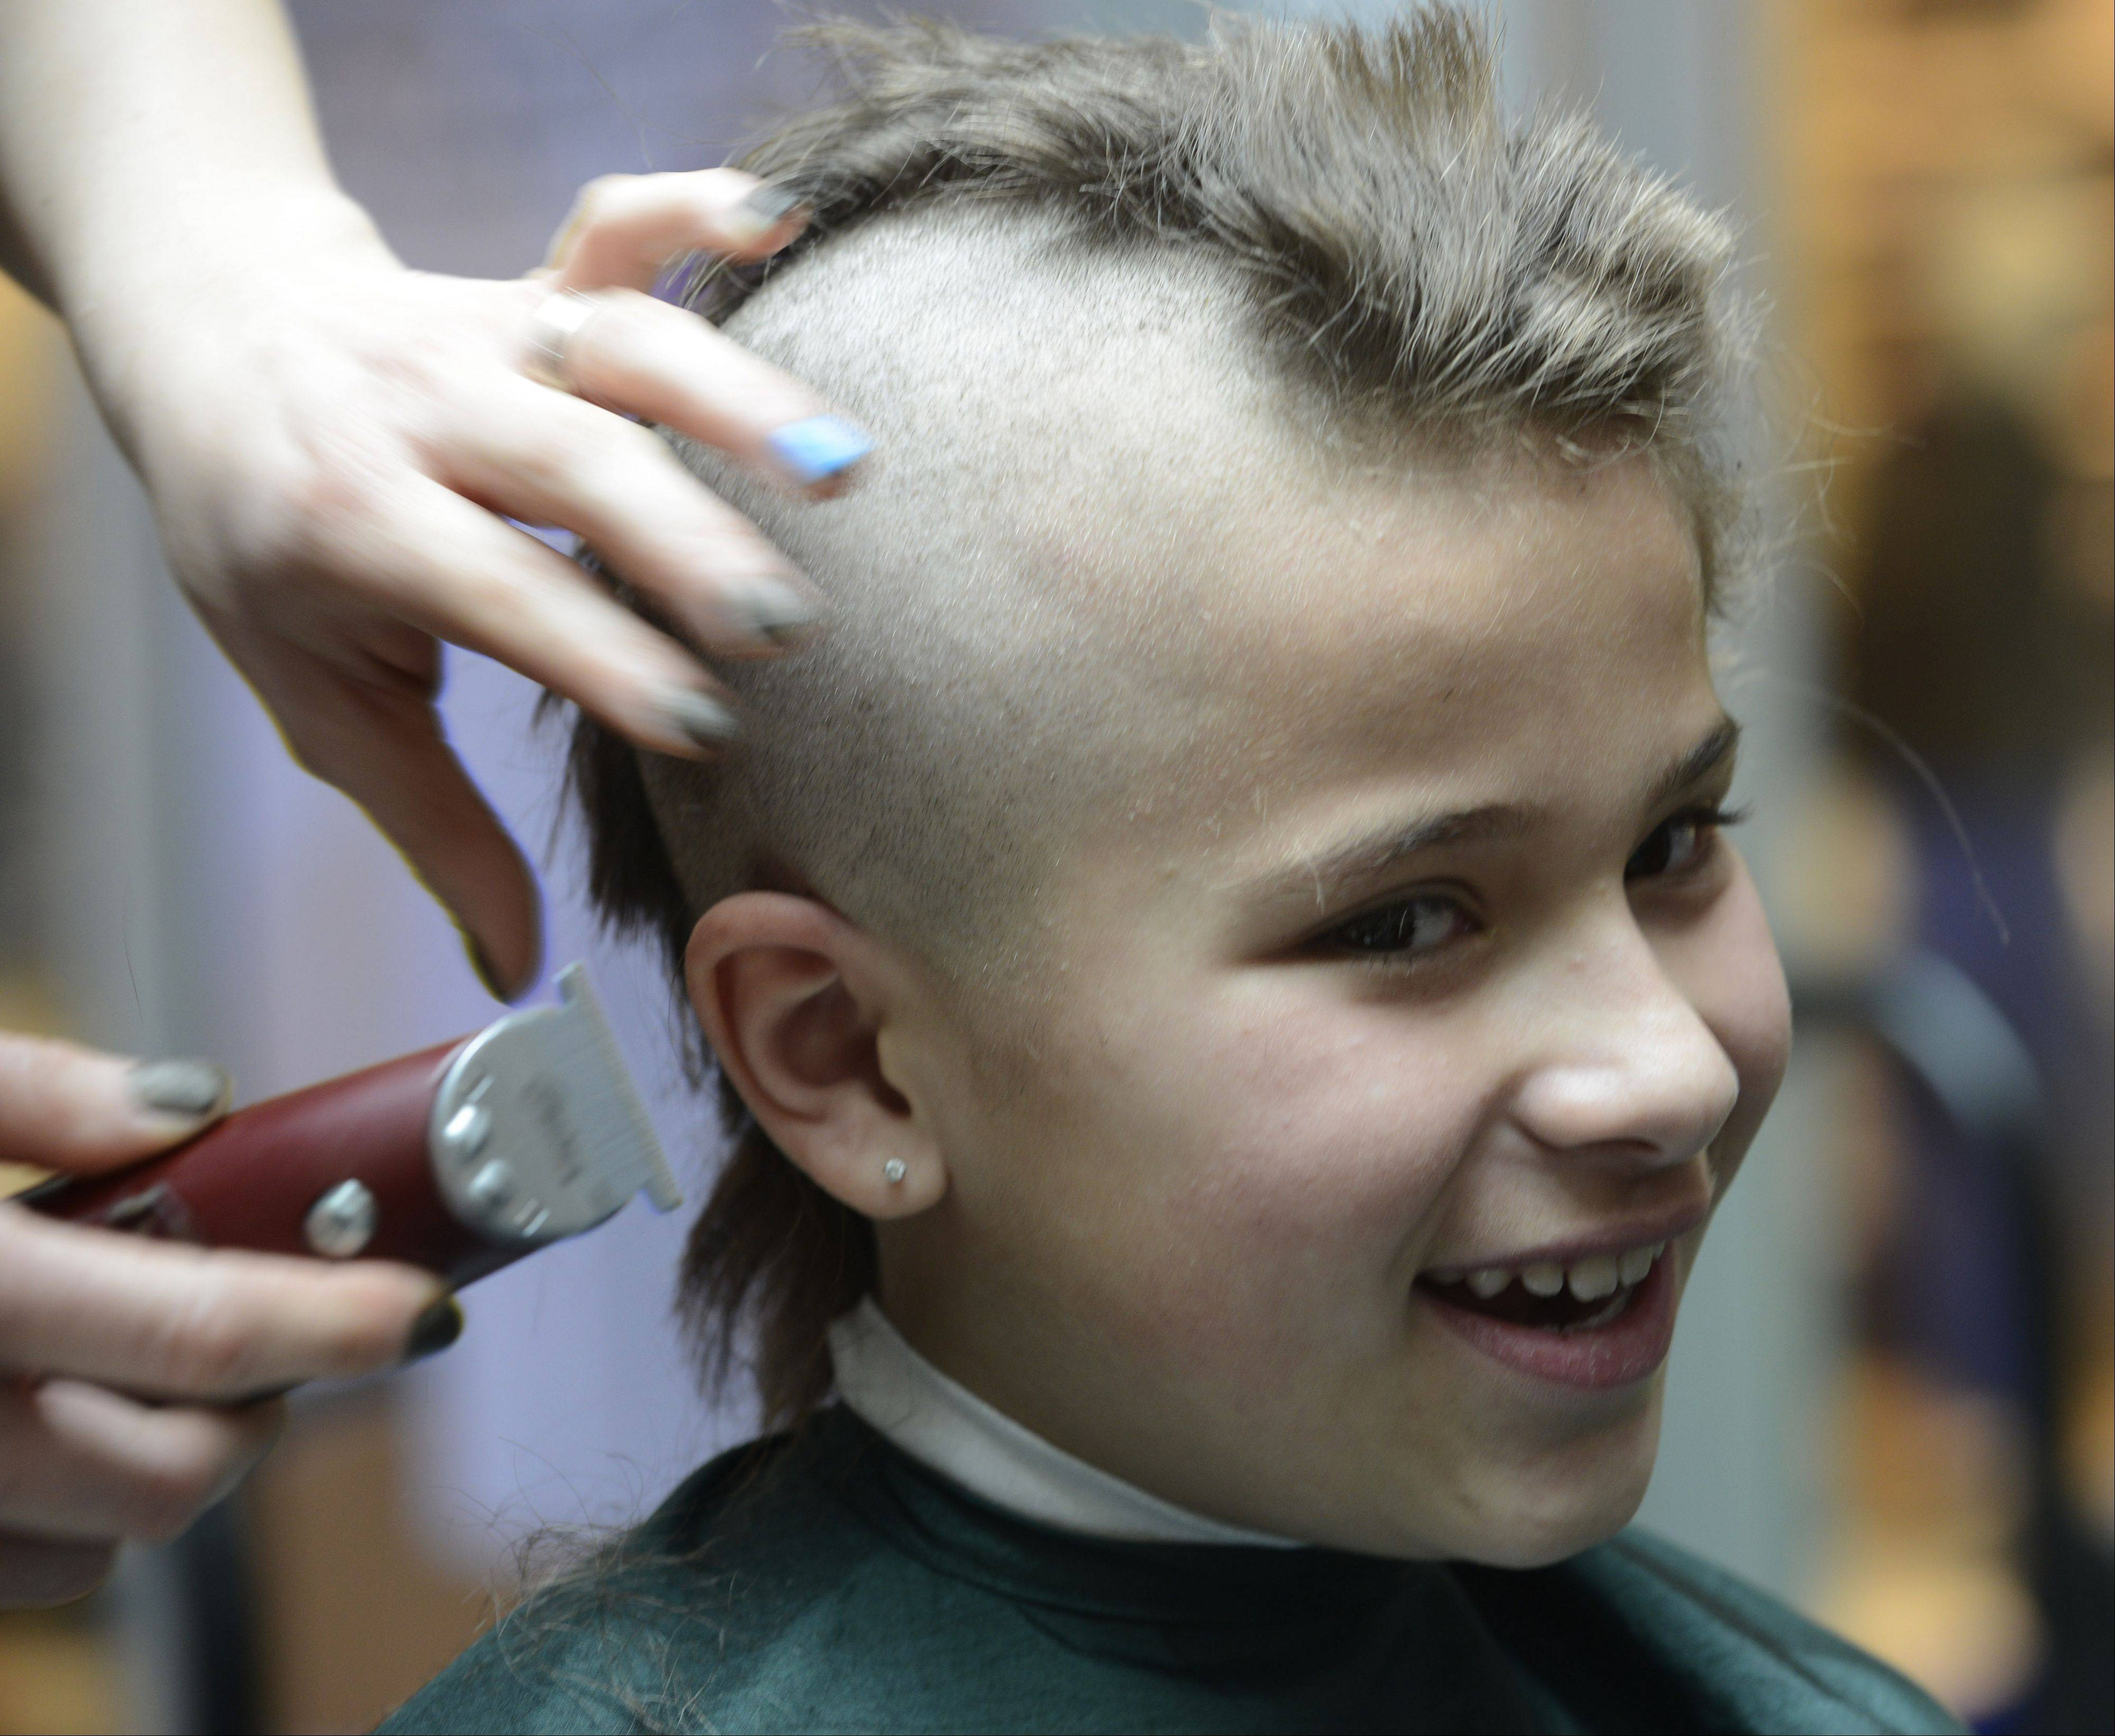 Kaitlyn Joseph, 9, gets her head shaved Saturday at the St. Baldrick's Foundation fundraiser at Westfield Hawthorn Mall in Vernon Hills.